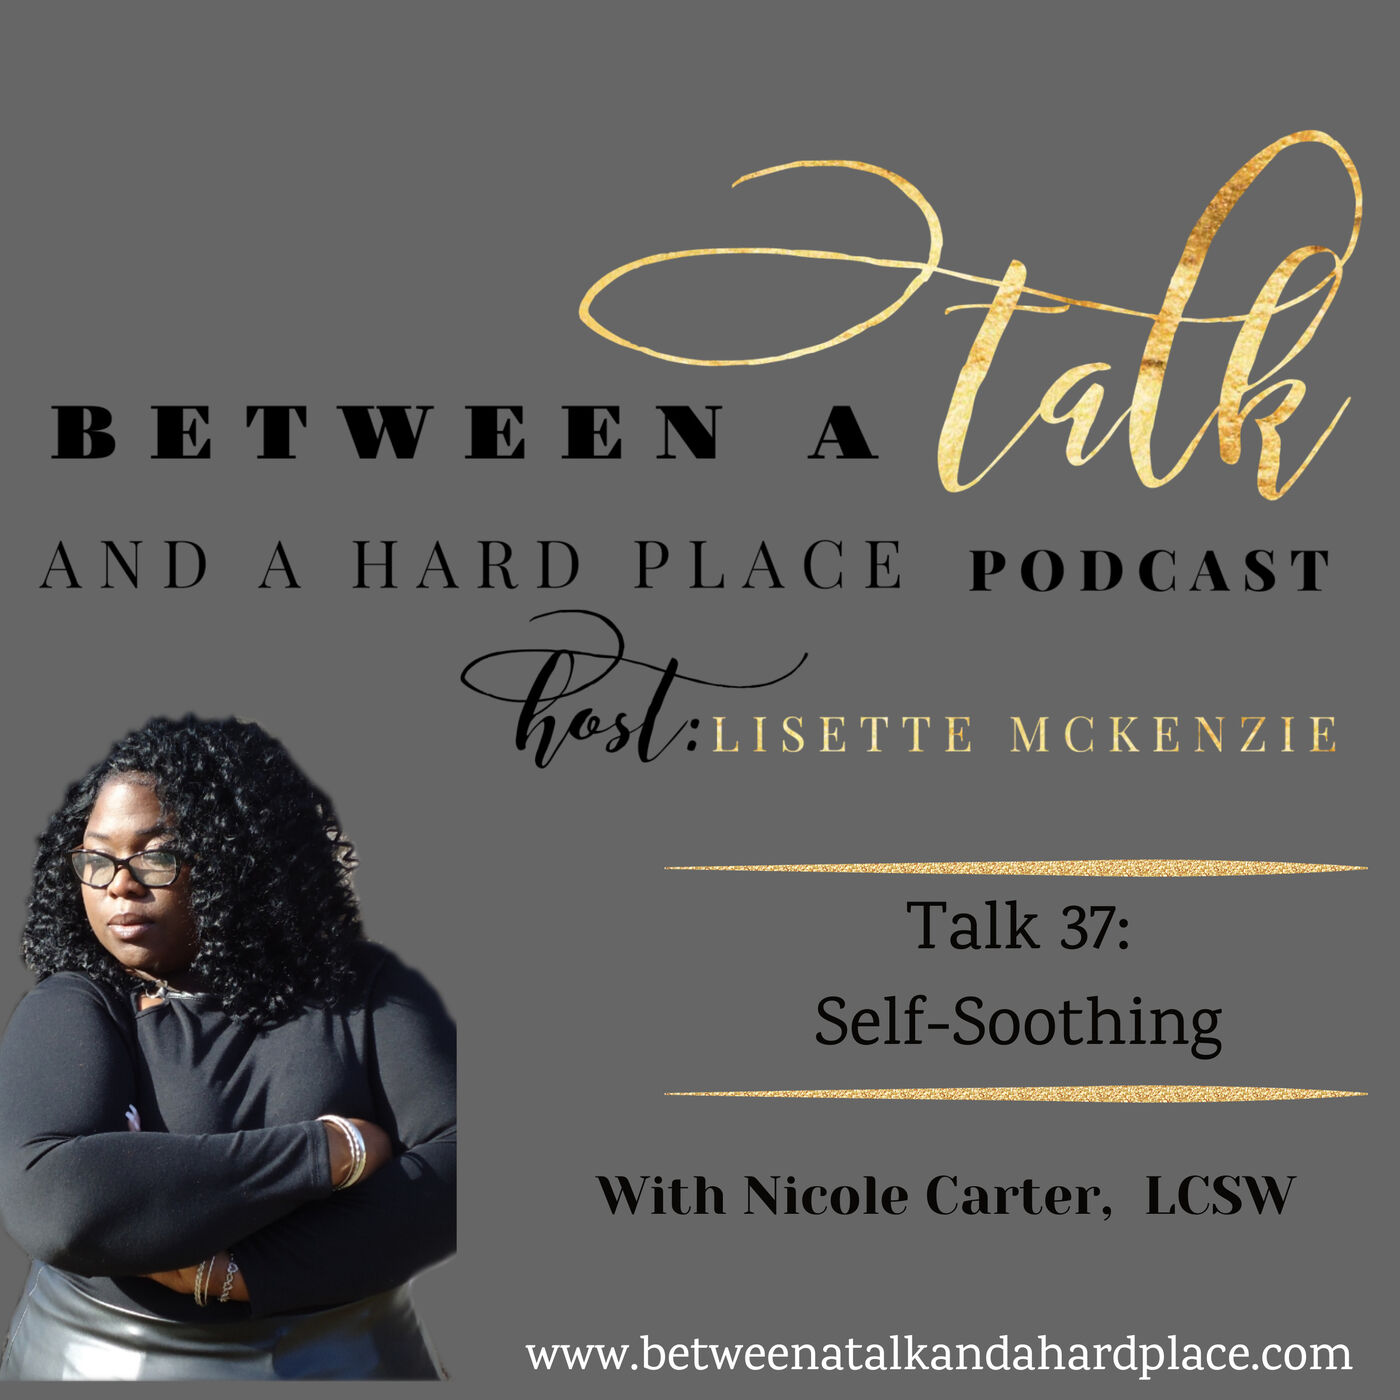 Talk 37: Self-Soothing